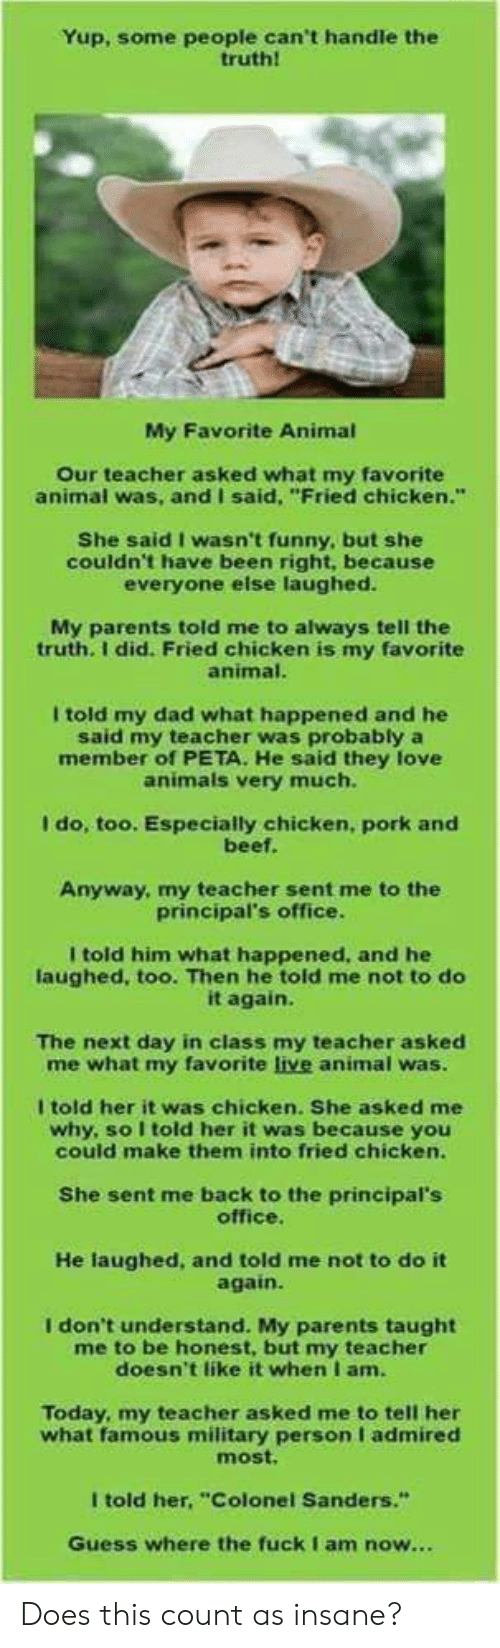 """Animals, Beef, and Dad: Yup, some people can't handle the  truth!  My Favorite Animal  Our teacher asked what my favorite  animal was, and I said, """"Fried chicken.""""  She said I wasn't funny, but she  couldn't have been right, because  everyone else laughed.  My parents told me to always tell the  truth. I did. Fried chicken is my favorite  animal.  I told my dad what happened and he  said my teacher was probably a  member of PETA. He said they love  animals very much.  I do, too. Especially chicken, pork and  beef.  Anyway, my teacher sent me to the  principal's office.  I told him what happened, and he  laughed, too. Then he told me not to do  it again.  The next day in class my teacher asked  me what my favorite live animal was.  I told her it was chicken. She asked me  why, so I told her it was because you  could make them into fried chicken.  She sent me back to the principal's  office.  He laughed, and told me not to do it  again.  I don't understand. My parents taught  me to be honest, but my teacher  doesn't like it when I am.  Today, my teacher asked me to tell her  what famous military person I admired  most.  I told her, """"Colonel Sanders.""""  Guess where the fuckI am now... Does this count as insane?"""